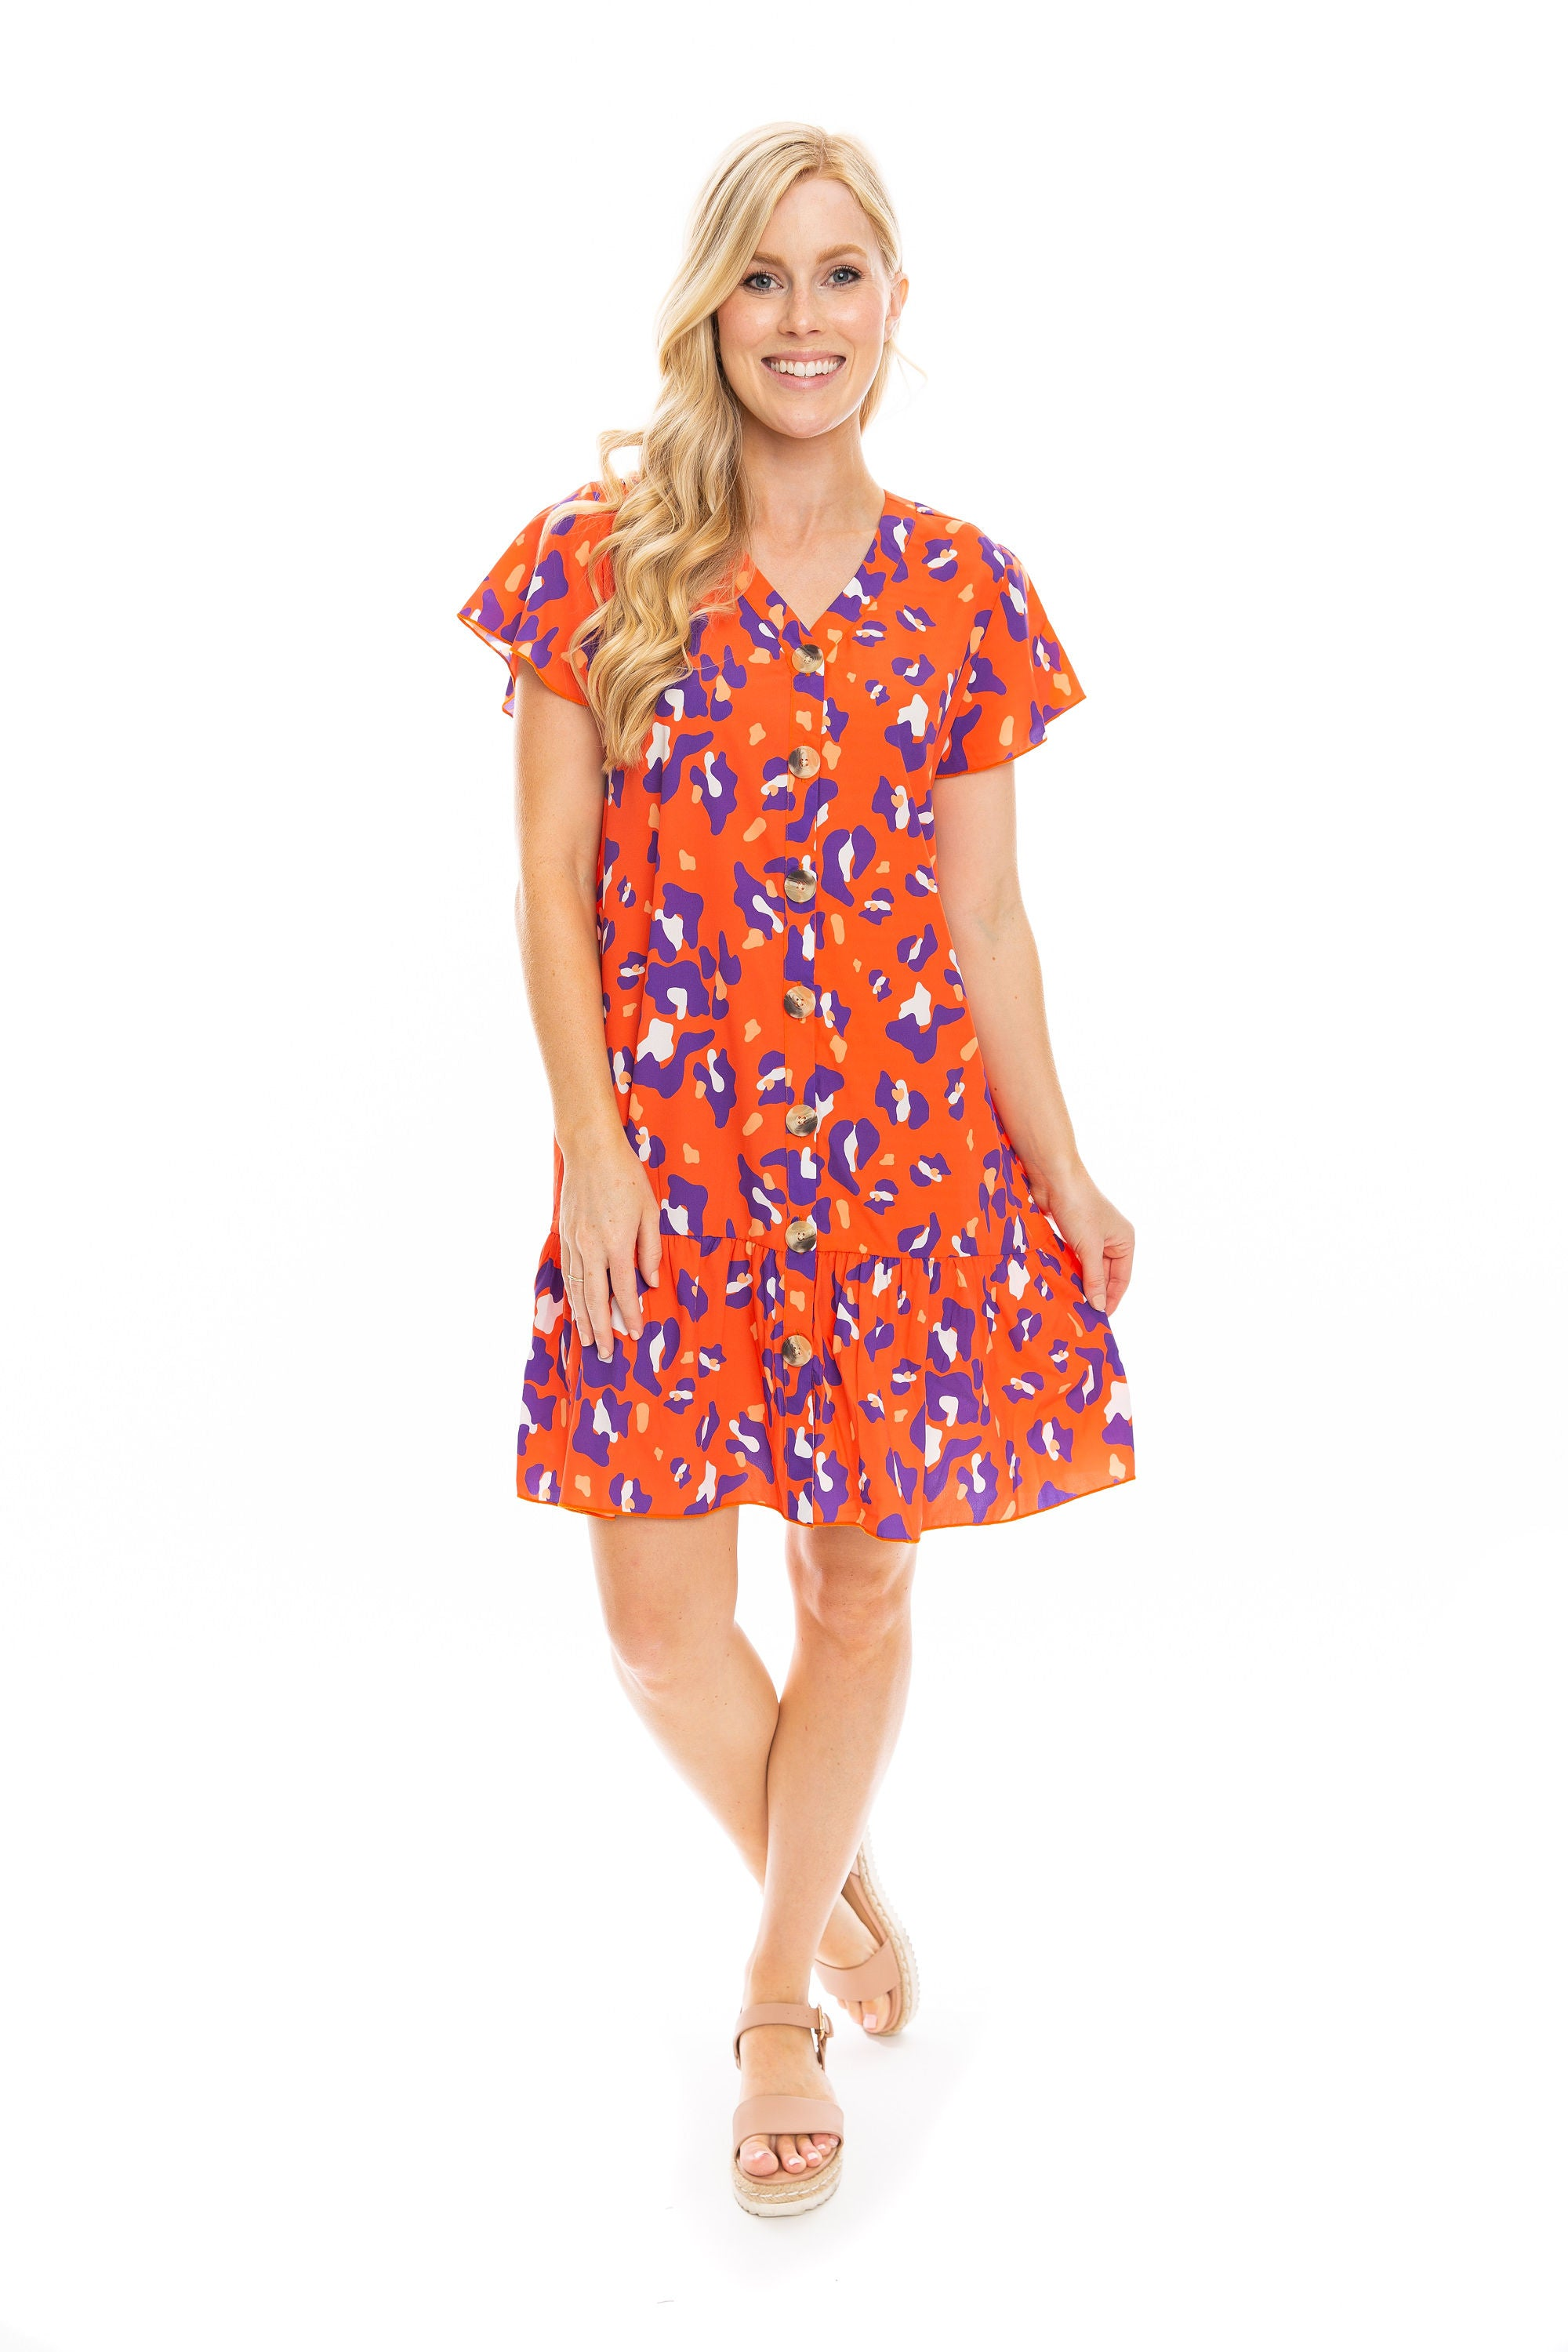 The Ruffle Hem Dress | Cheetah